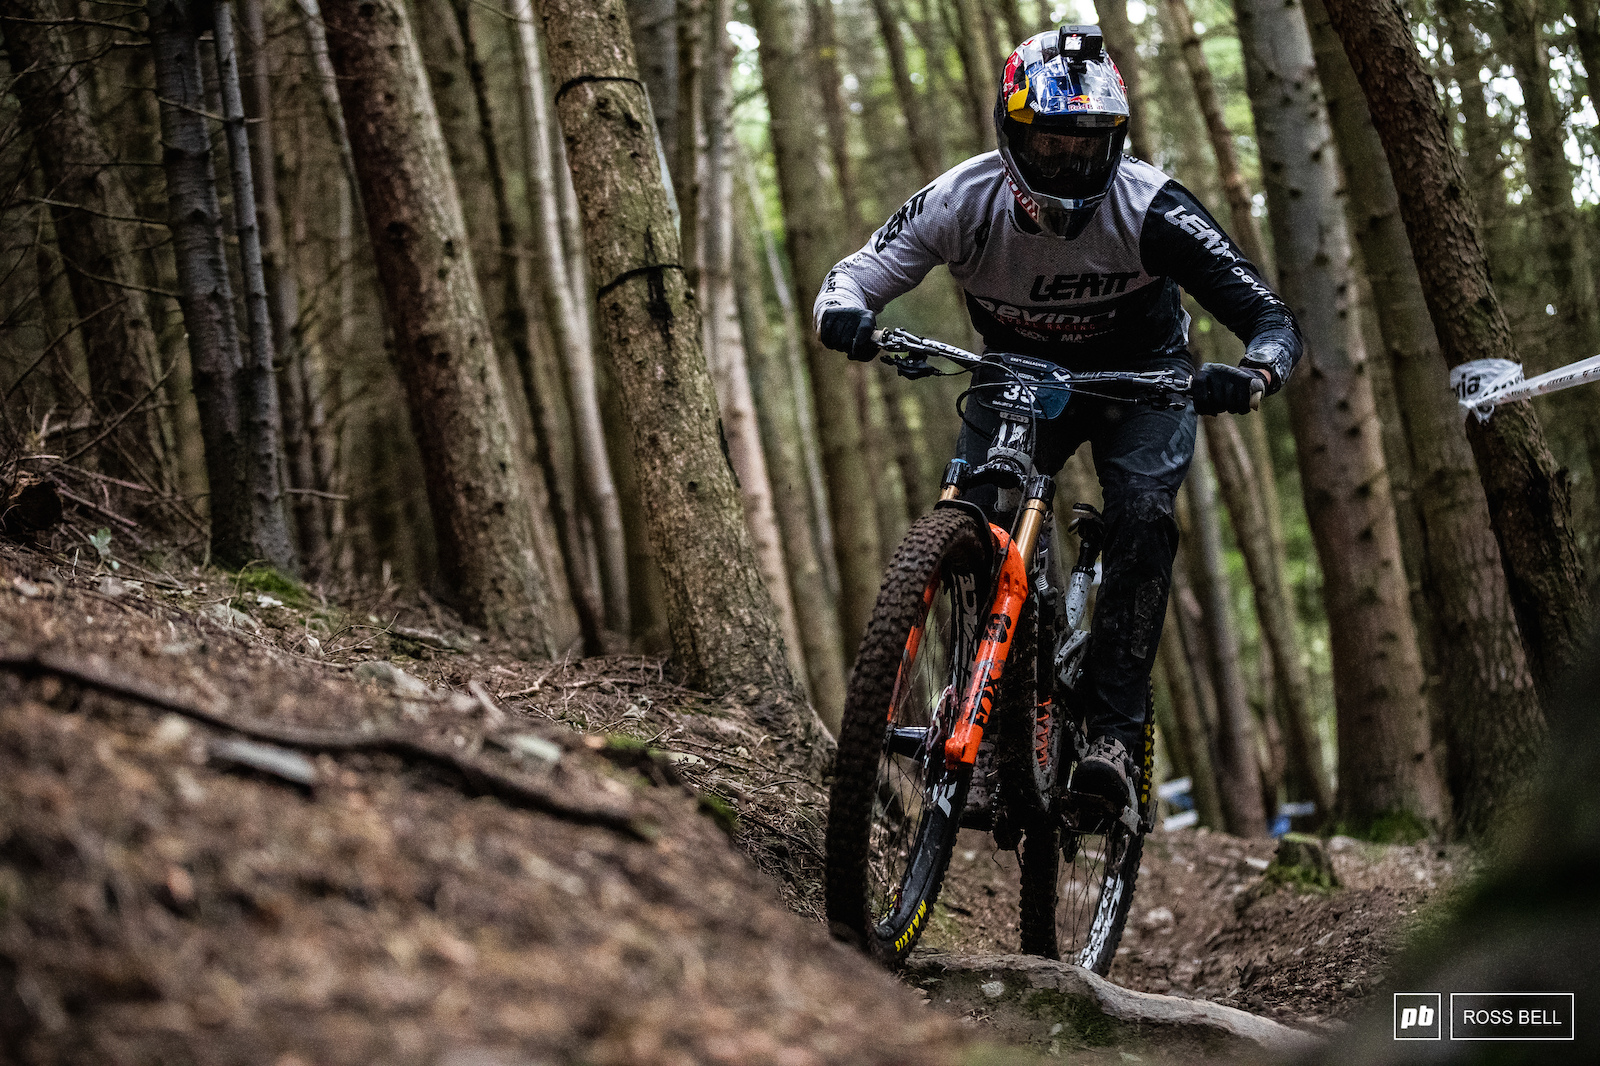 Greg Callaghan has had strong results in the previous two Tweed Valley EWS .